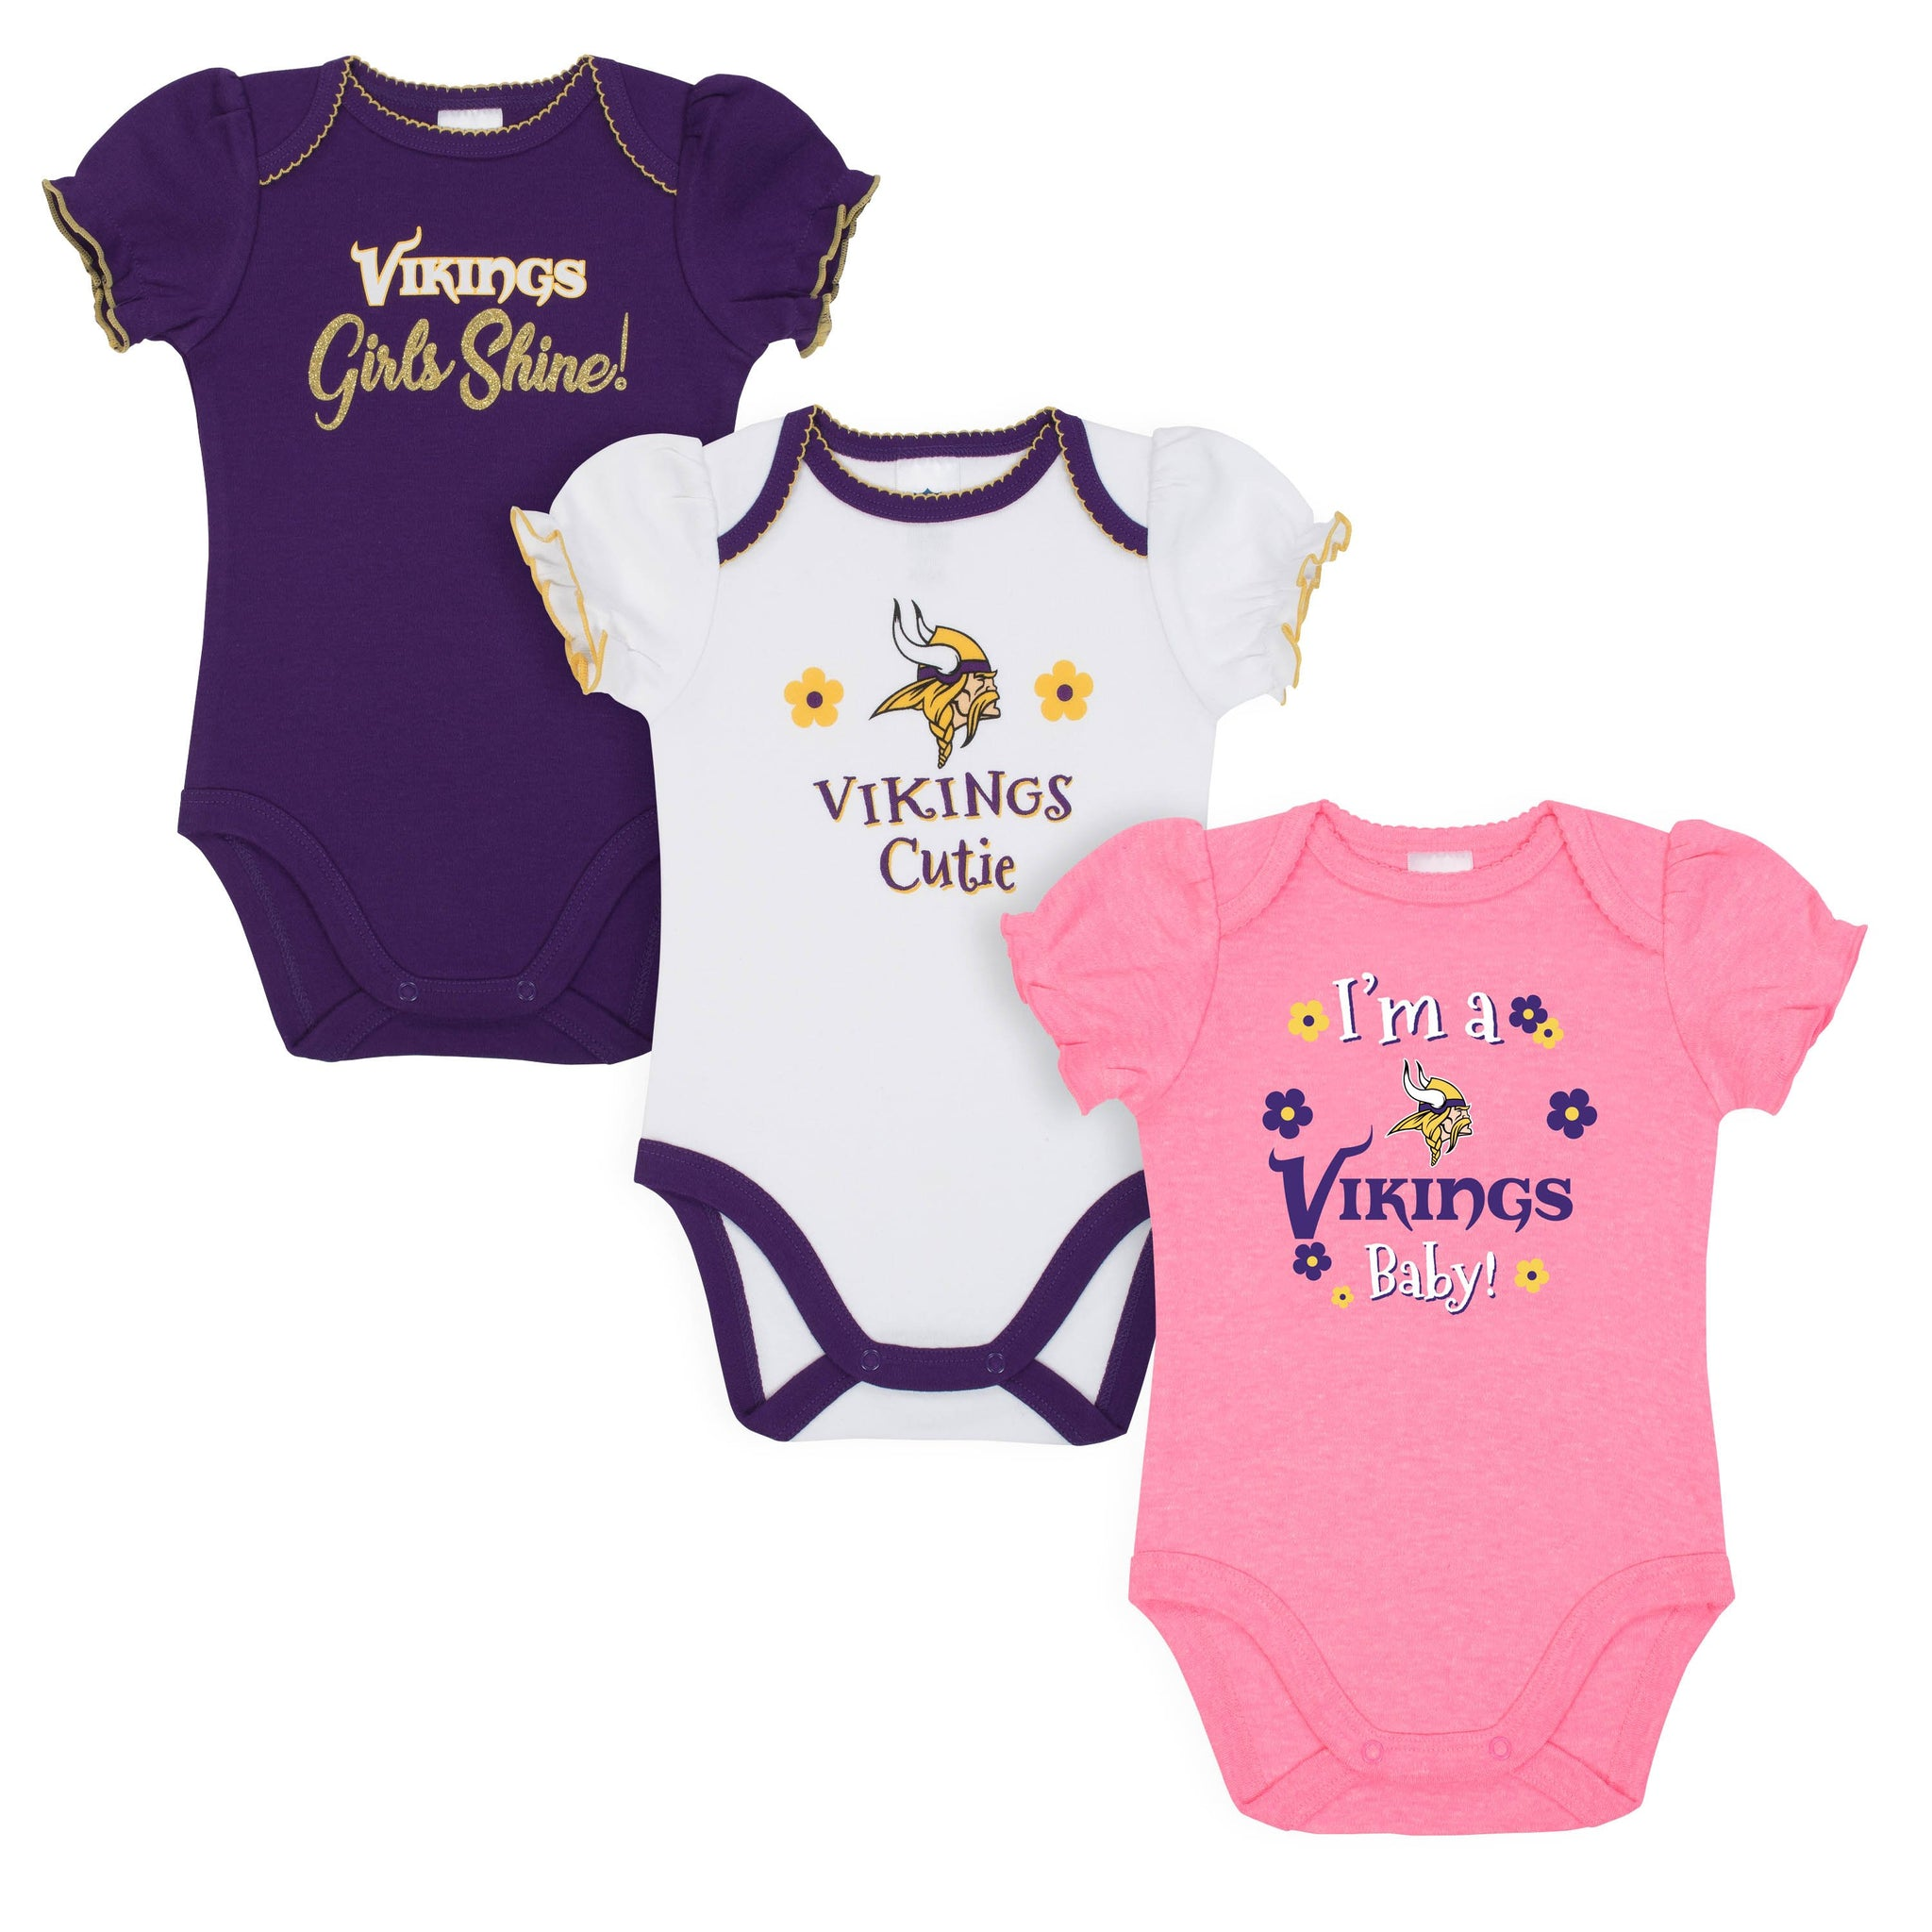 Minnesota Vikings Baby Girl Short Sleeve Bodysuit, 3-pack -Gerber Childrenswear